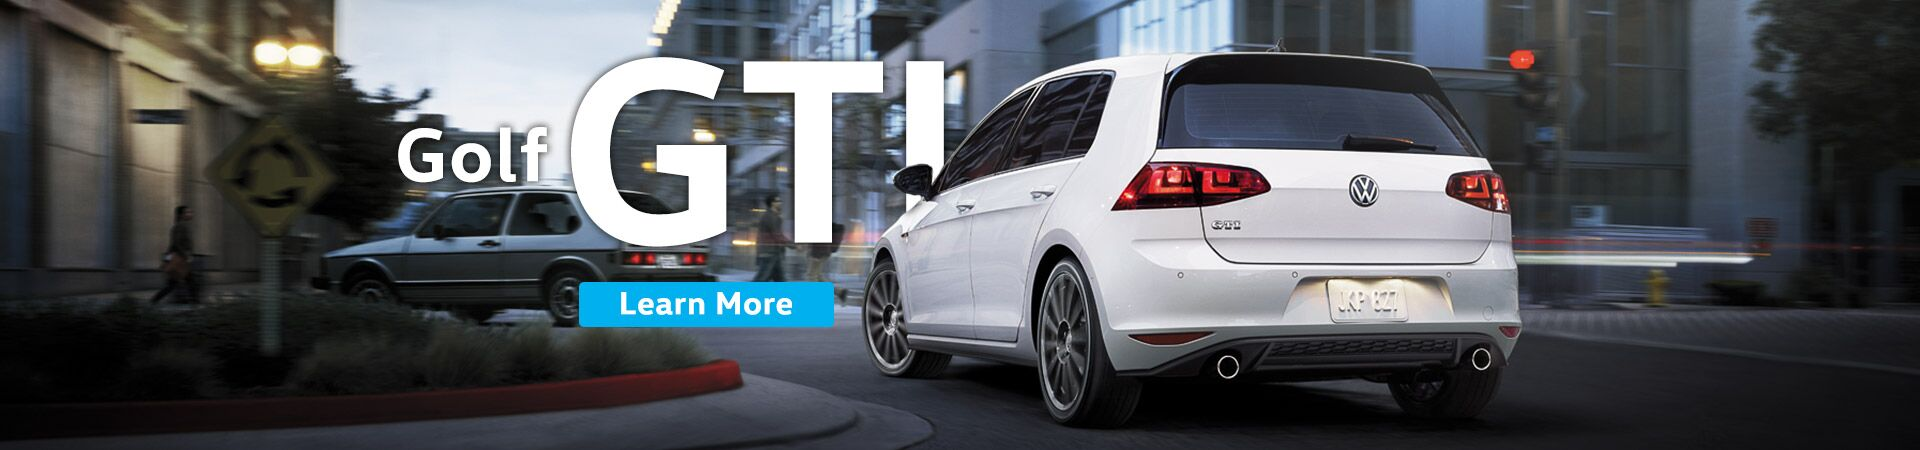 New Golf GTI at Payne Mission Volkswagen